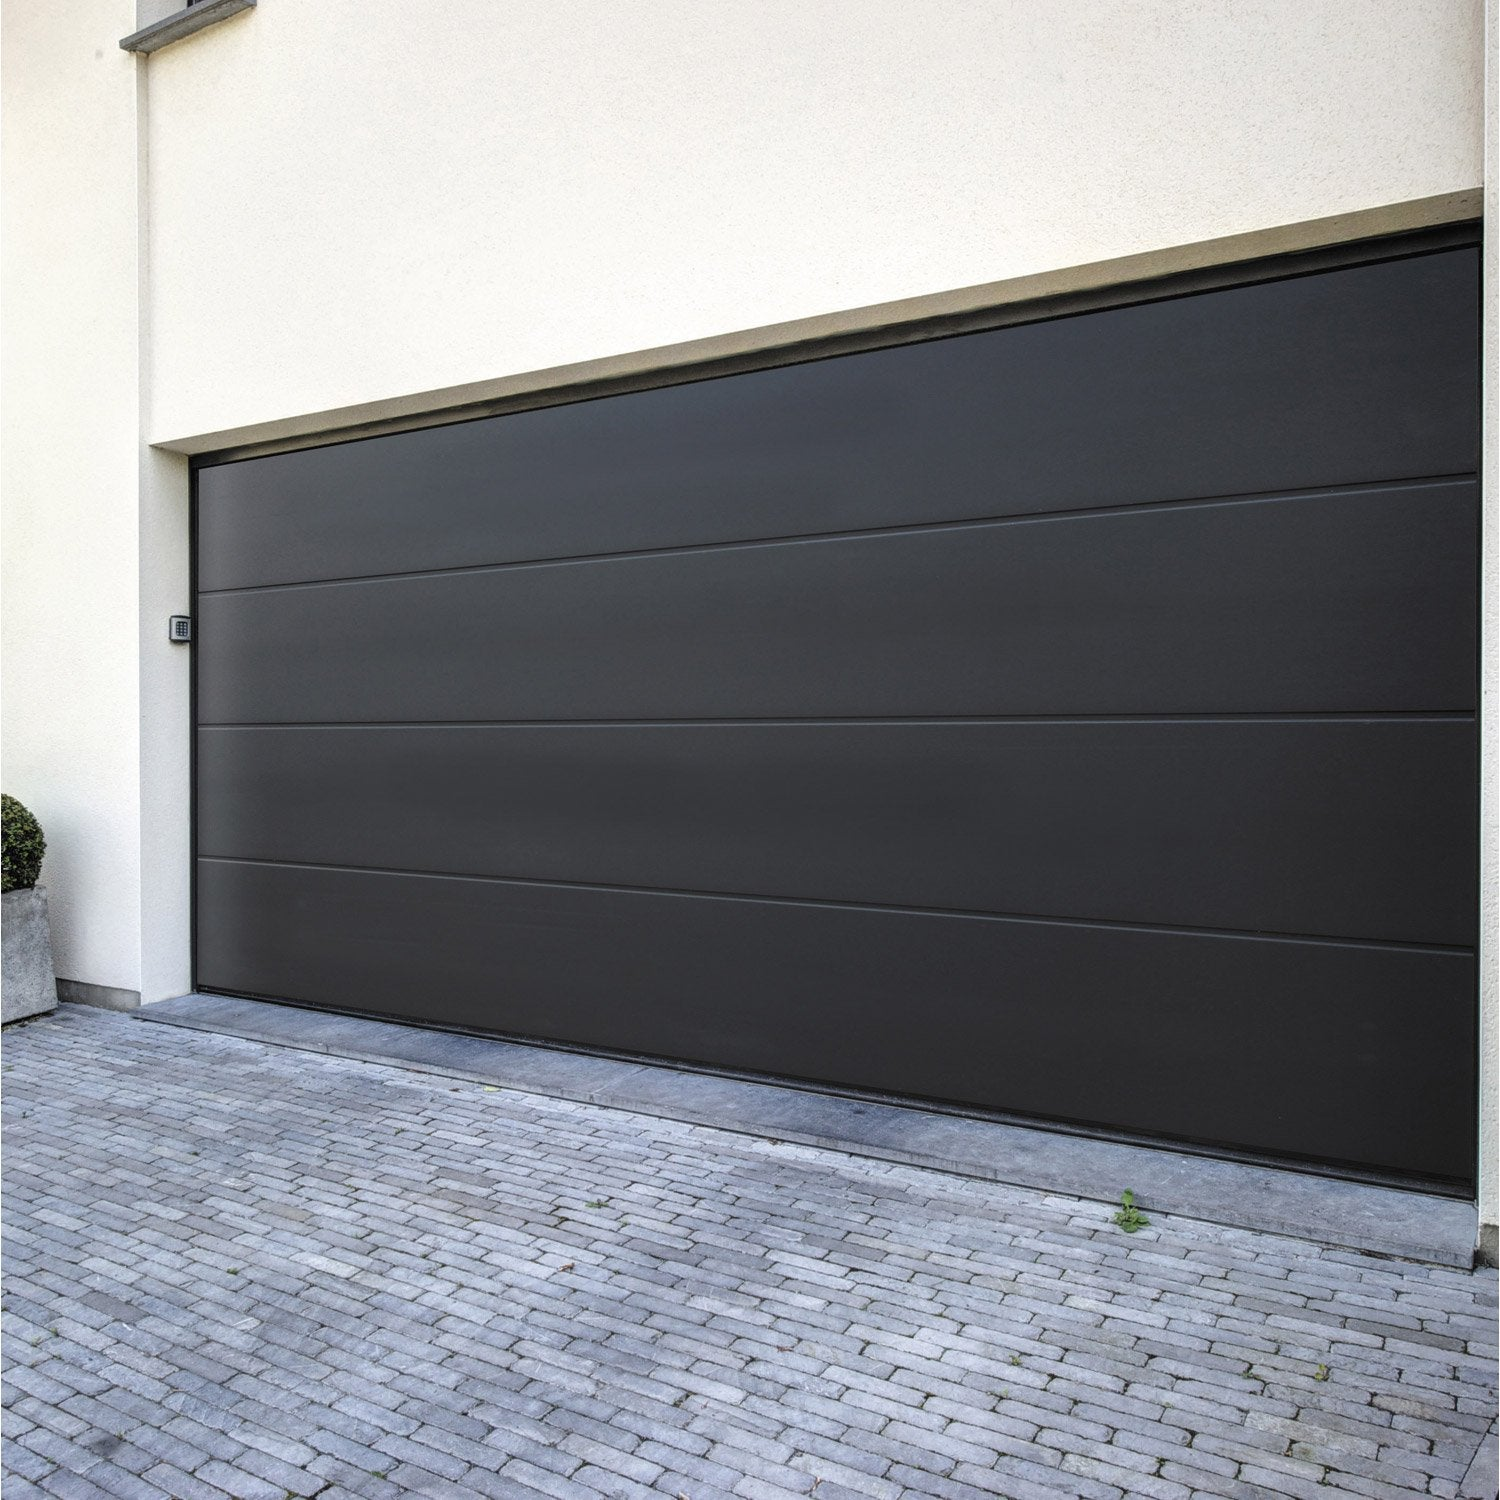 Pose d 39 une porte de garage sectionnelle 200x300cm leroy merlin - Leroy merlin porte de garage sectionnelle ...